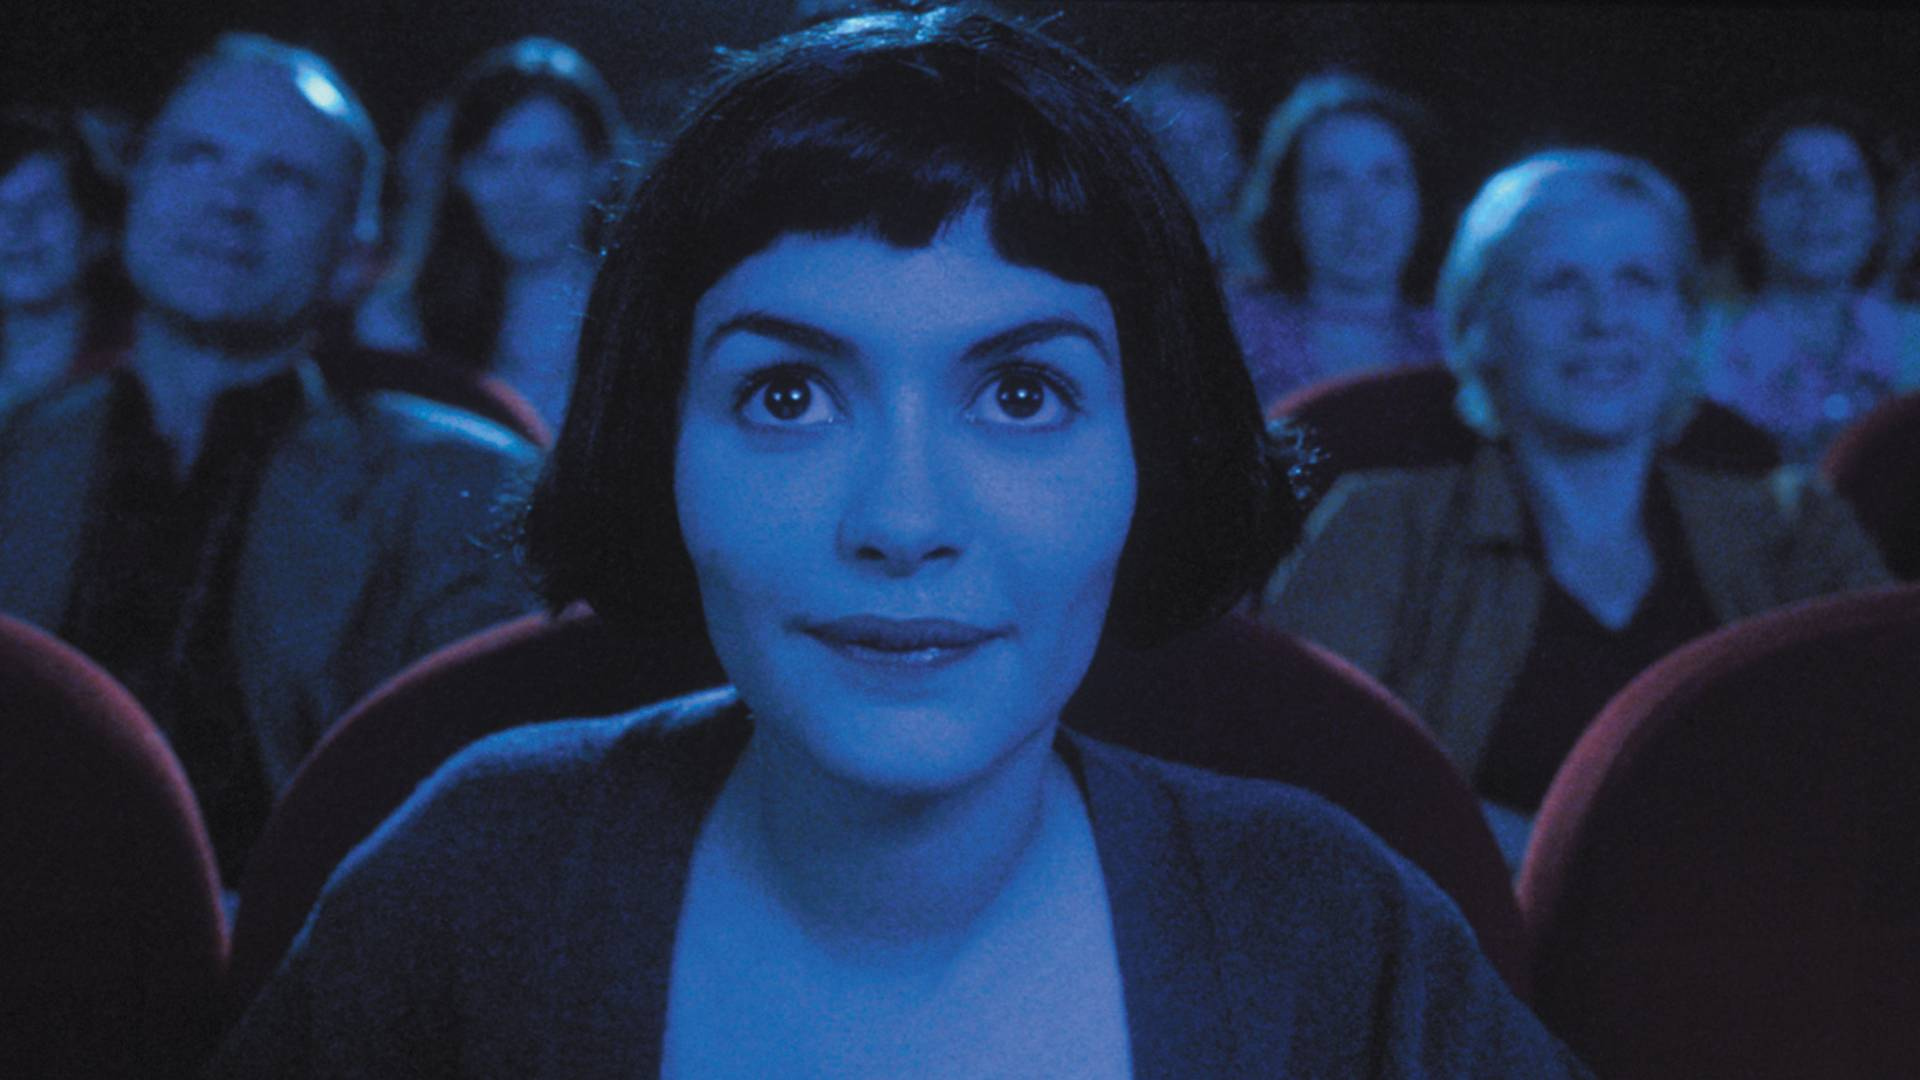 going to the cinema alone - scary amelie